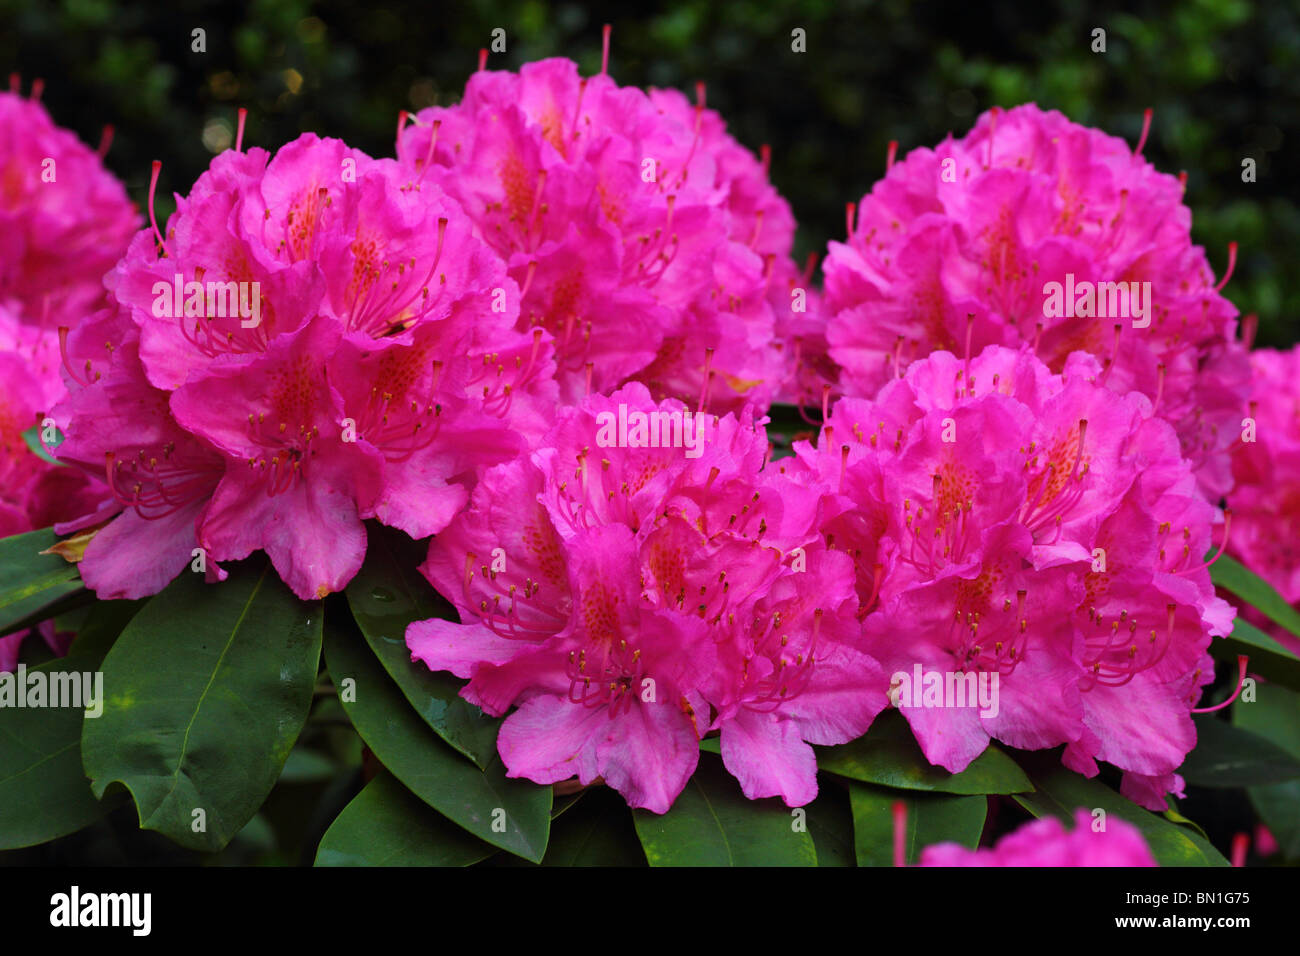 Pink rhododendron flowers close up - Stock Image